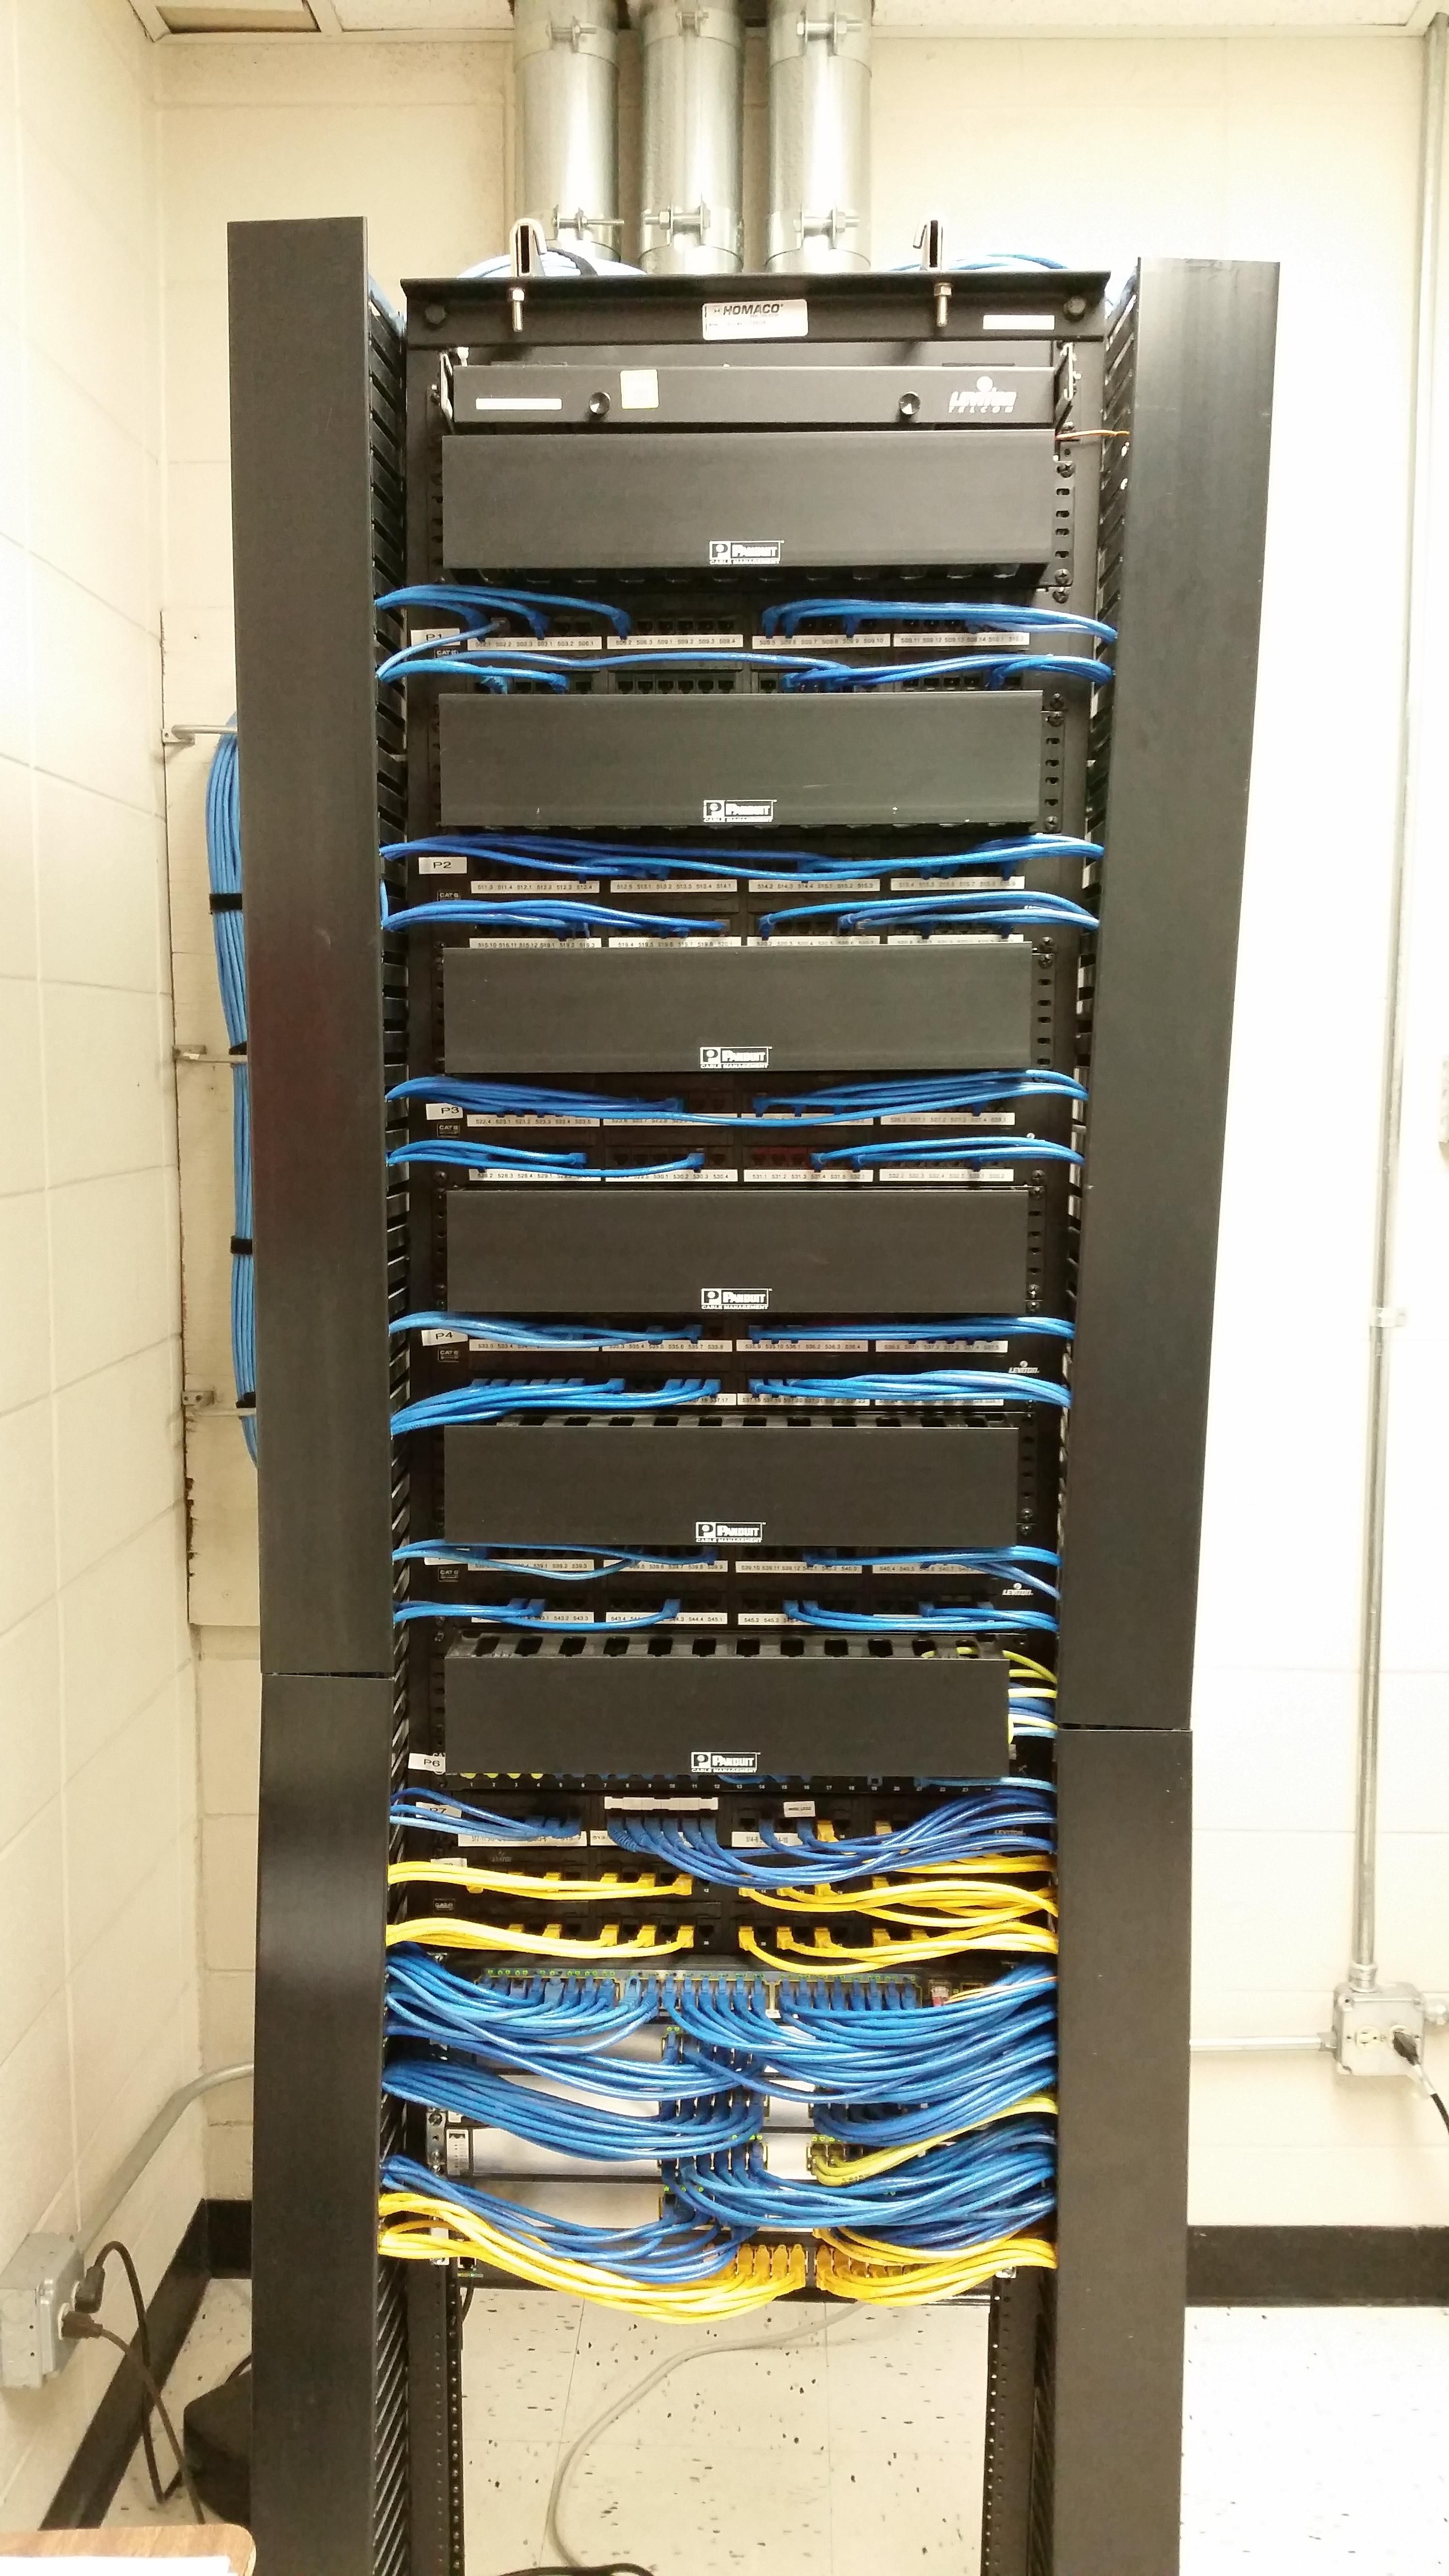 Several Cables Running Into Panduit Patch Panels Cisco Poe Switches Ethernet Cable Pins And Wires Labelled For Power Over Blue Are Data Yellow